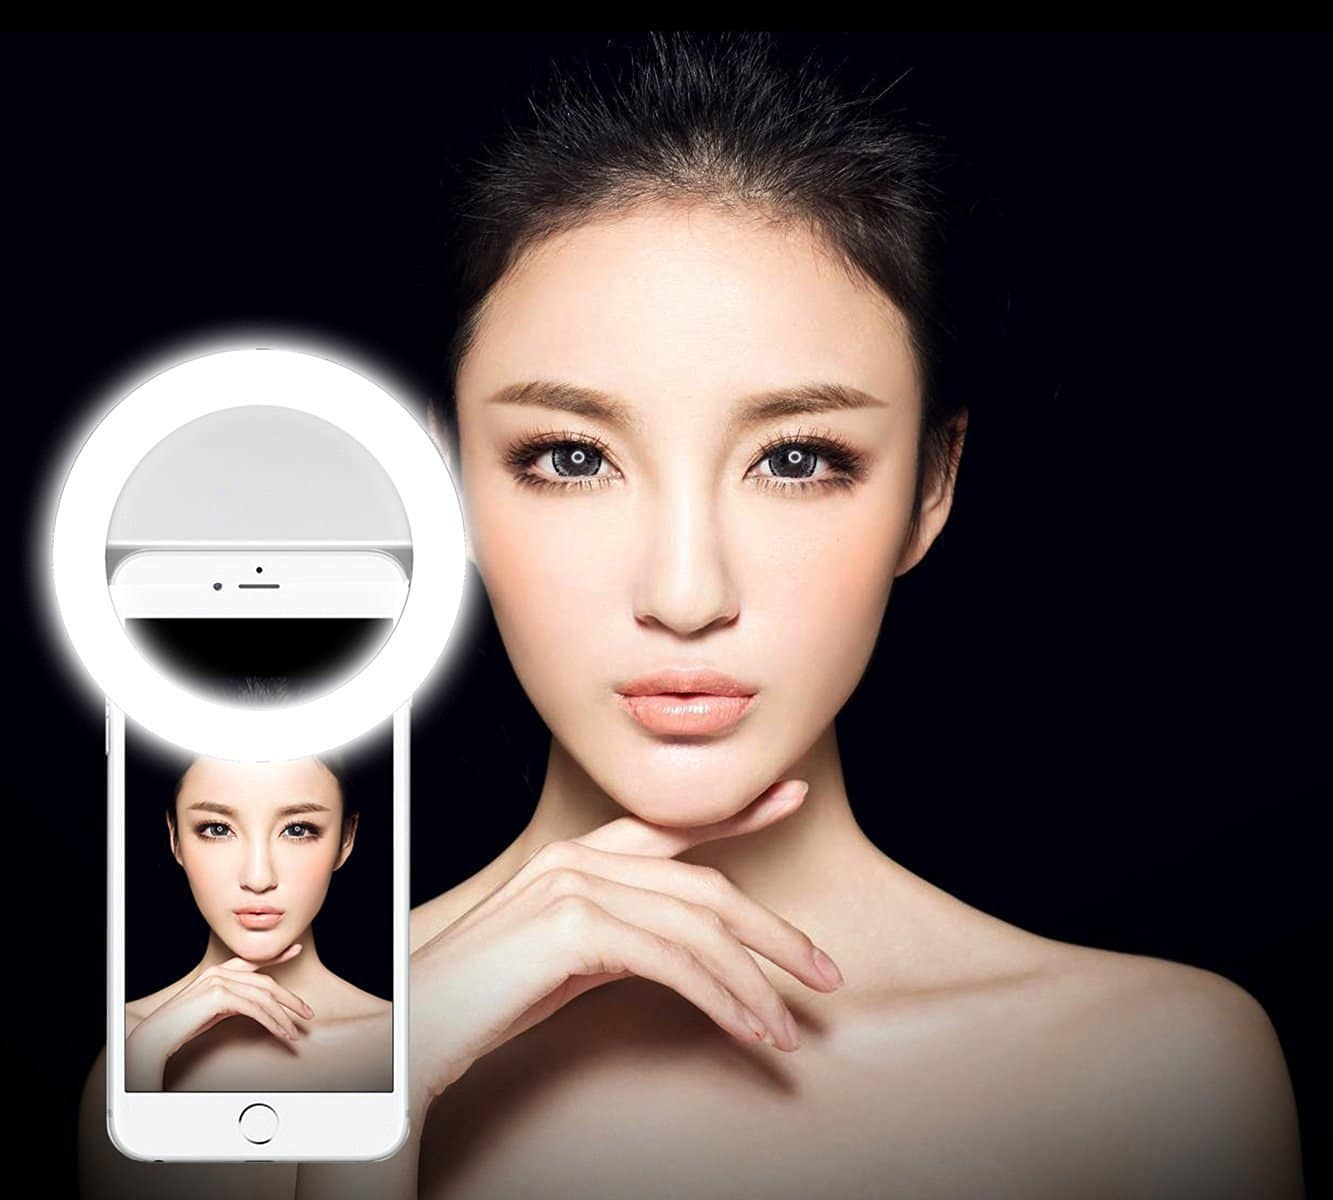 Selfie-Ring-Light-for-iPhone-6-plus6s65s54s4Samsung-Galaxy-S6-EdgeS6S5S4S3-Galaxy-Note-5432-Blackberry-B-B01GNSIFFO-2